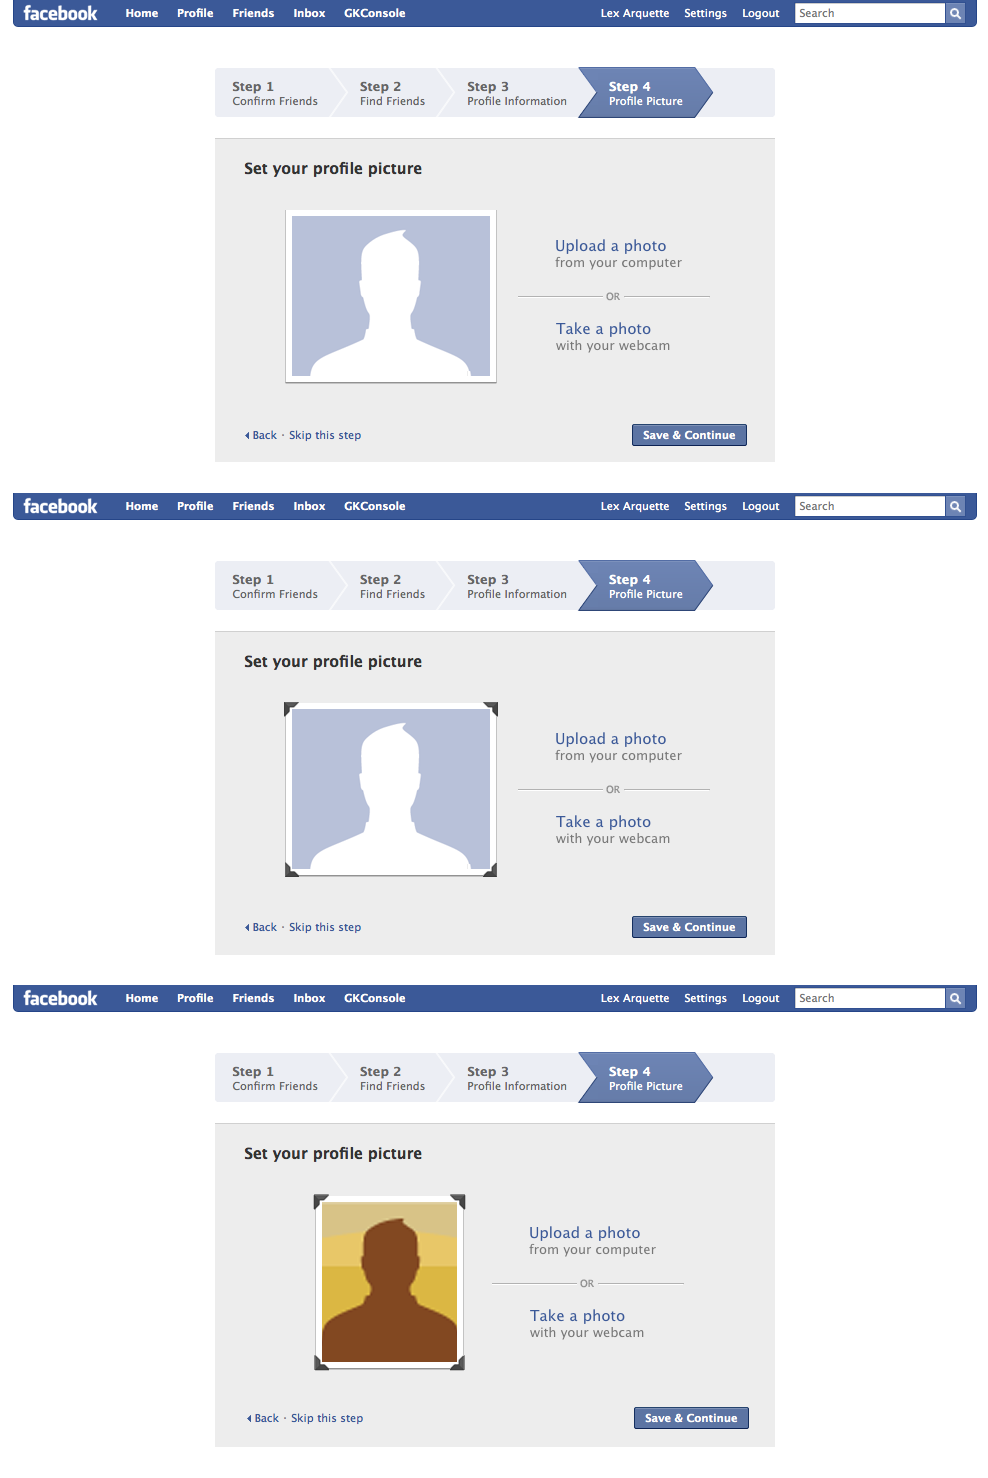 Set your profile picture - Many of the steps in the New User Flow required me to design and engineer multiple options. Each would be a/b tested against millions of real users. The winning design would then be launched to 100% of users.Sometimes the slightest design change can have a tremendous effect on the usability of an interface. Can you guess which of the 3 treatments to the left performed the best?